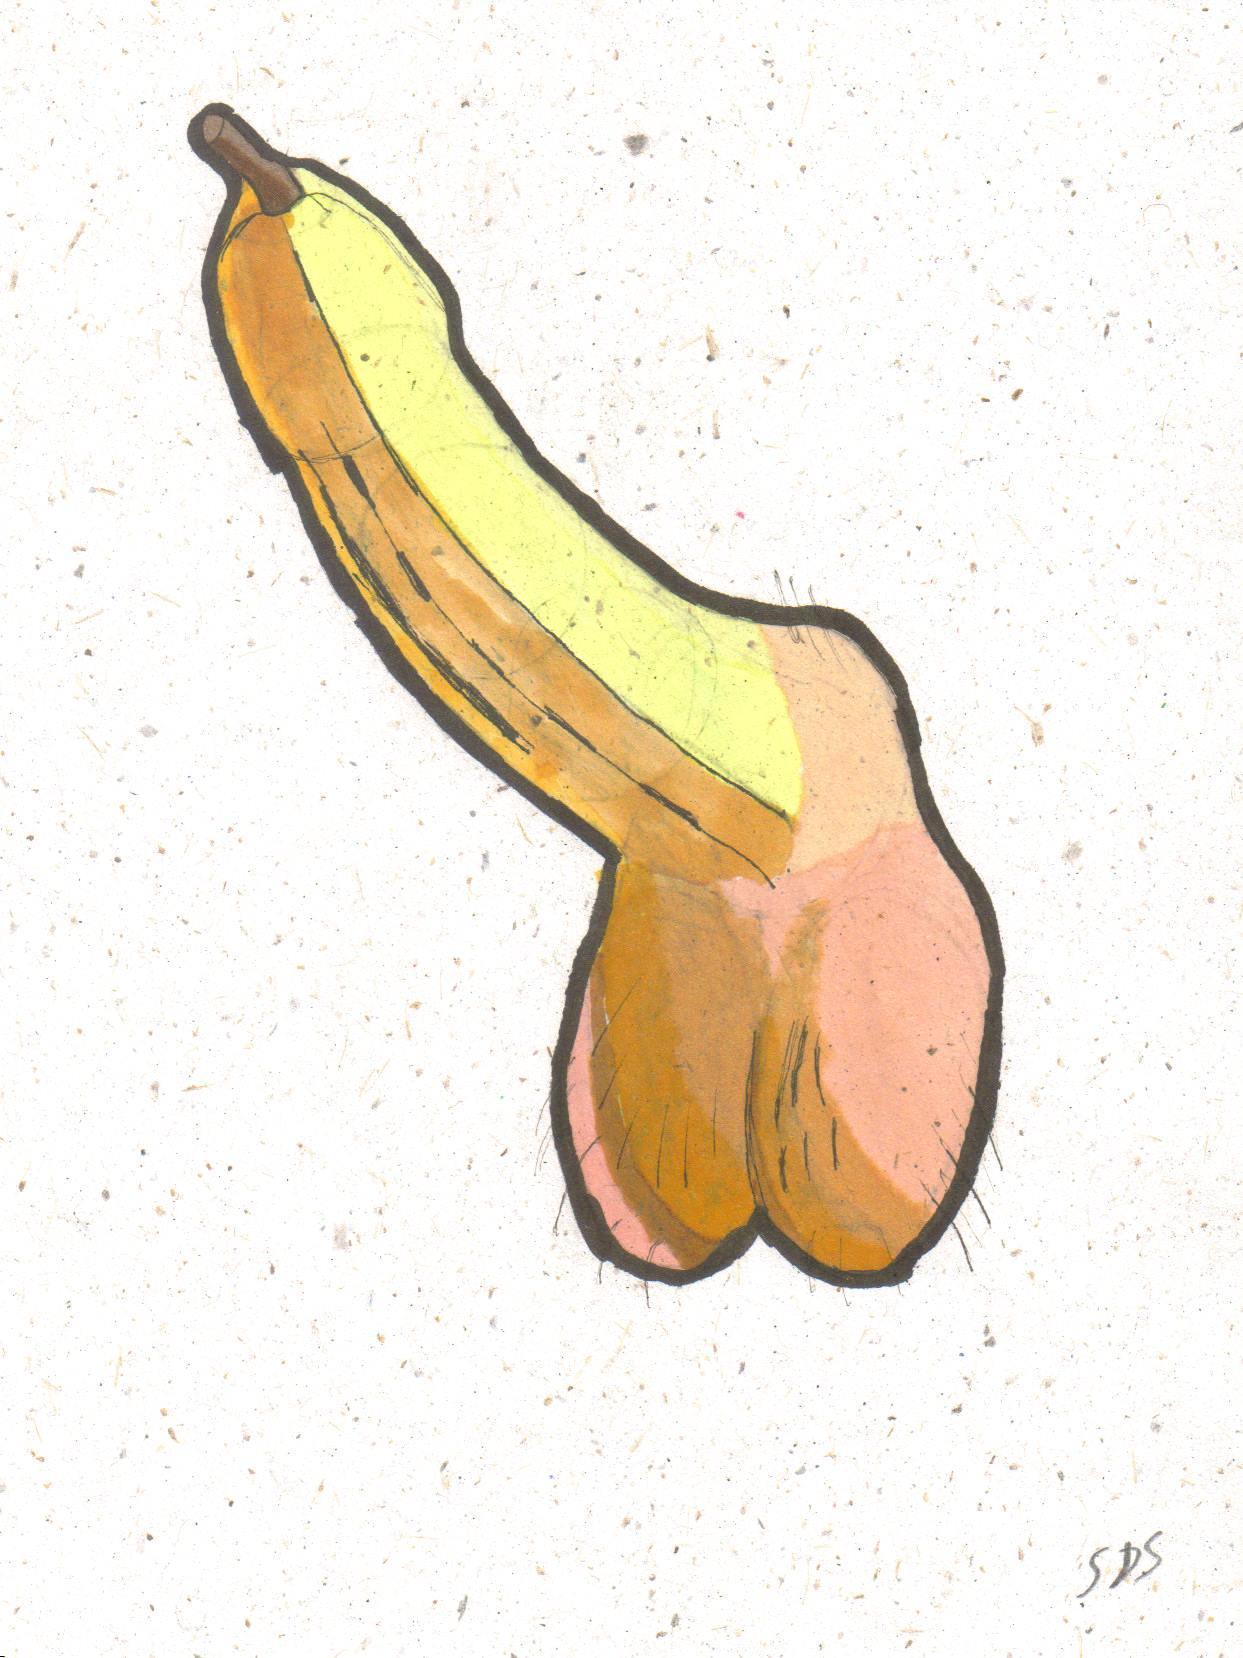 Banana Pecker